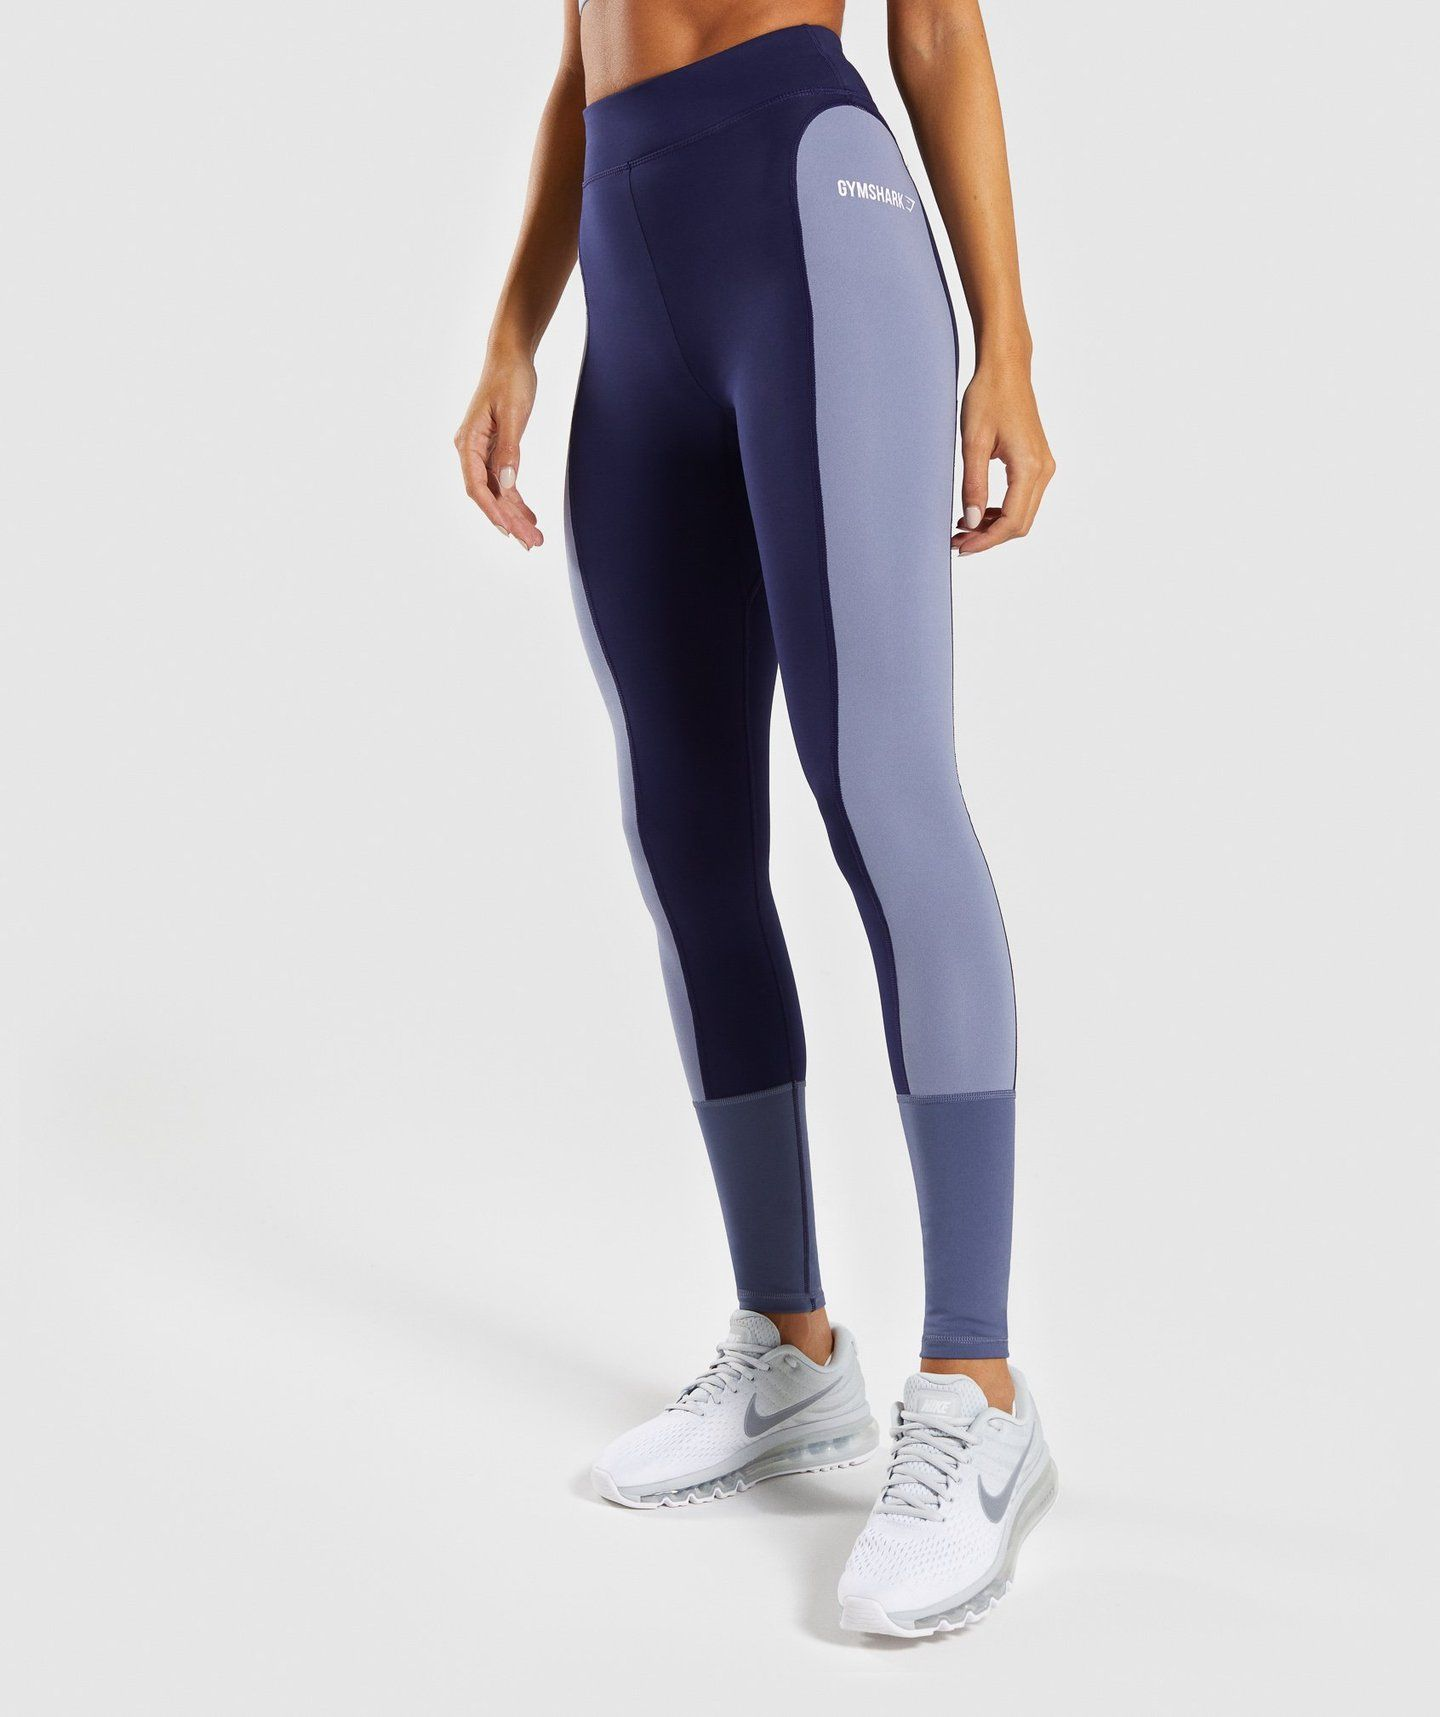 6c0b35220ced5 Gymshark Illusion Leggings - Evening Navy Blue/Steel Blue/Night ...